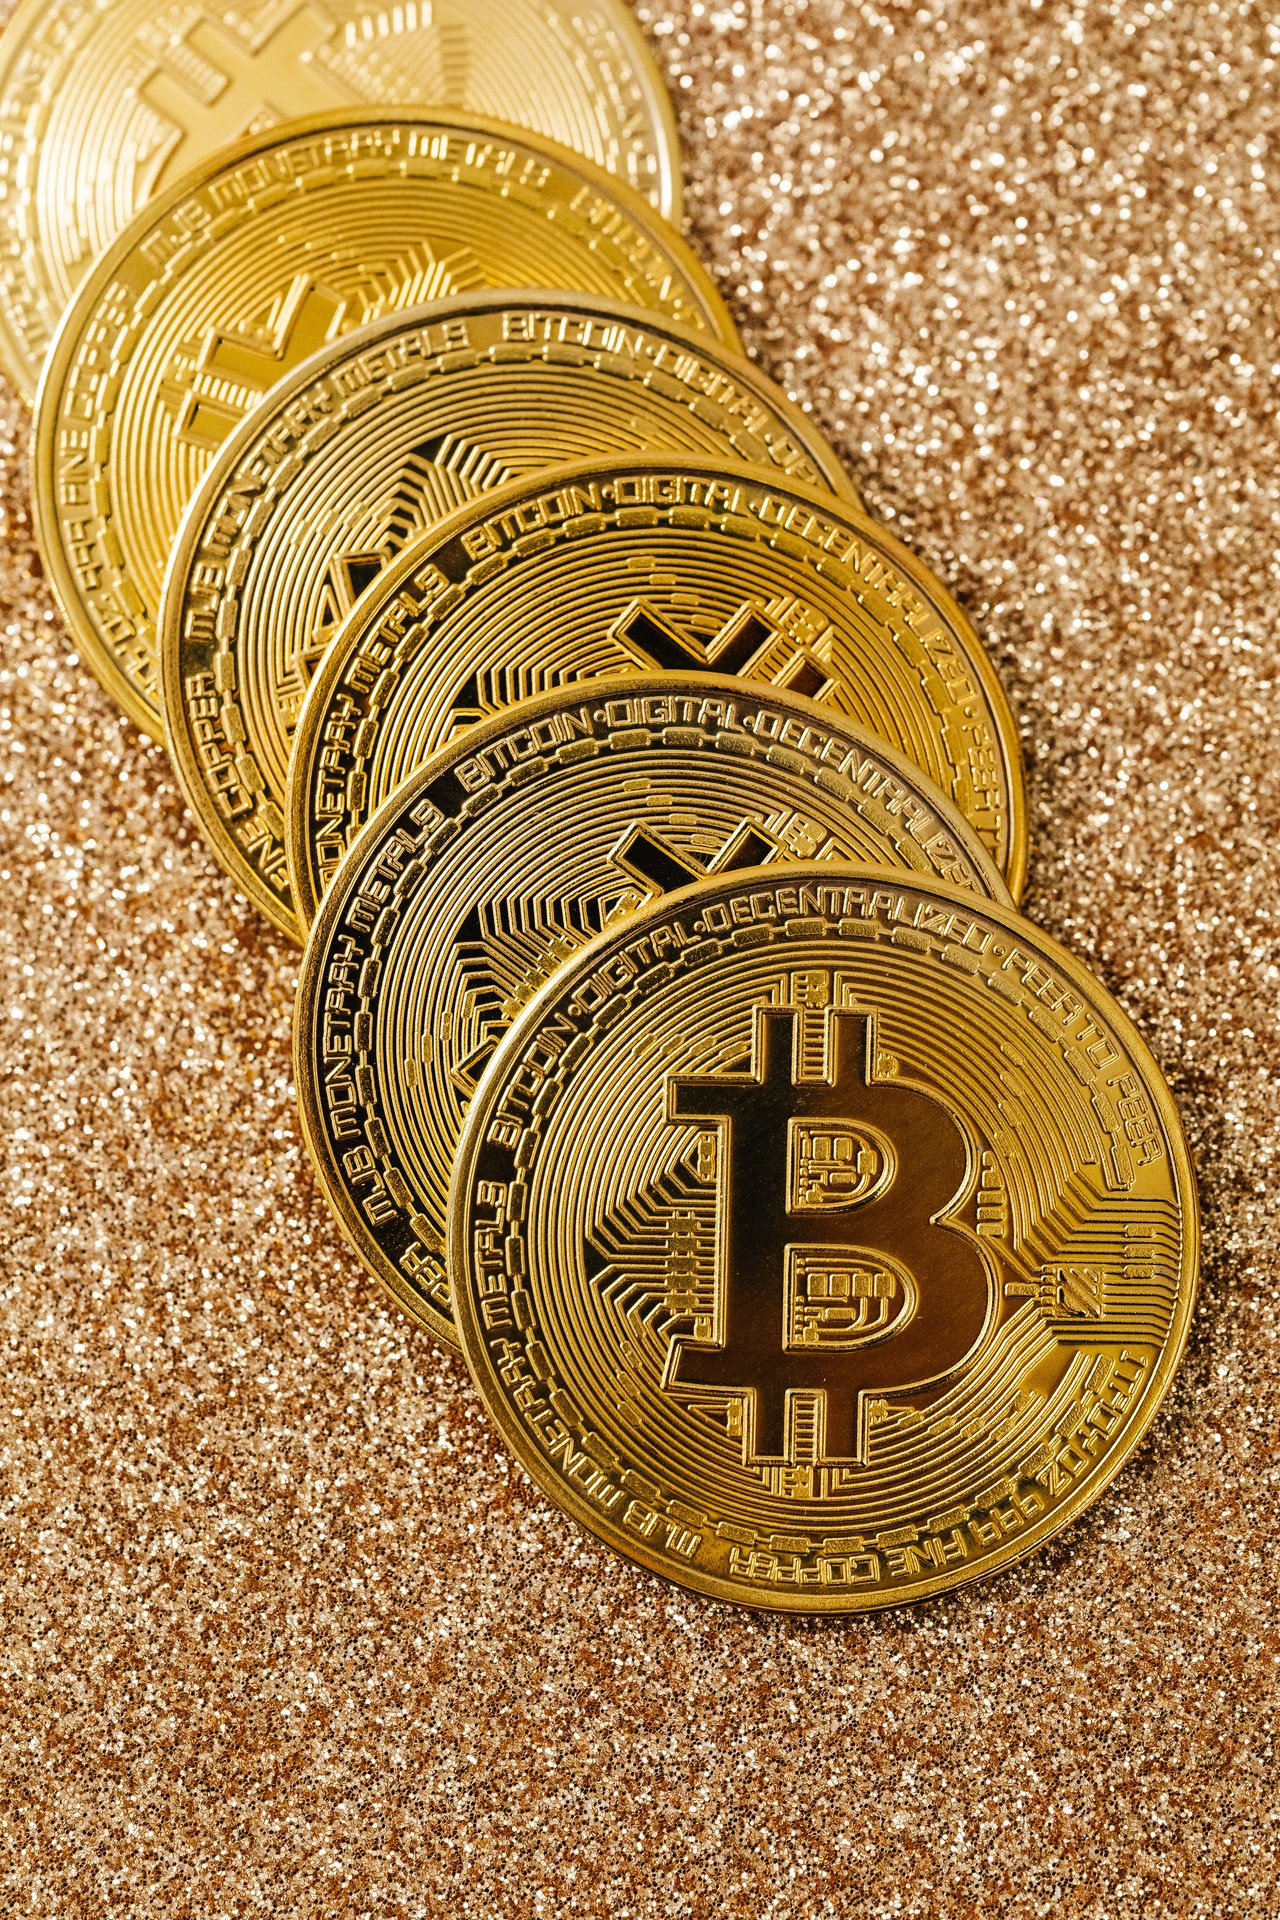 Bitcoin Decentralized Cryptocurrency Article Image